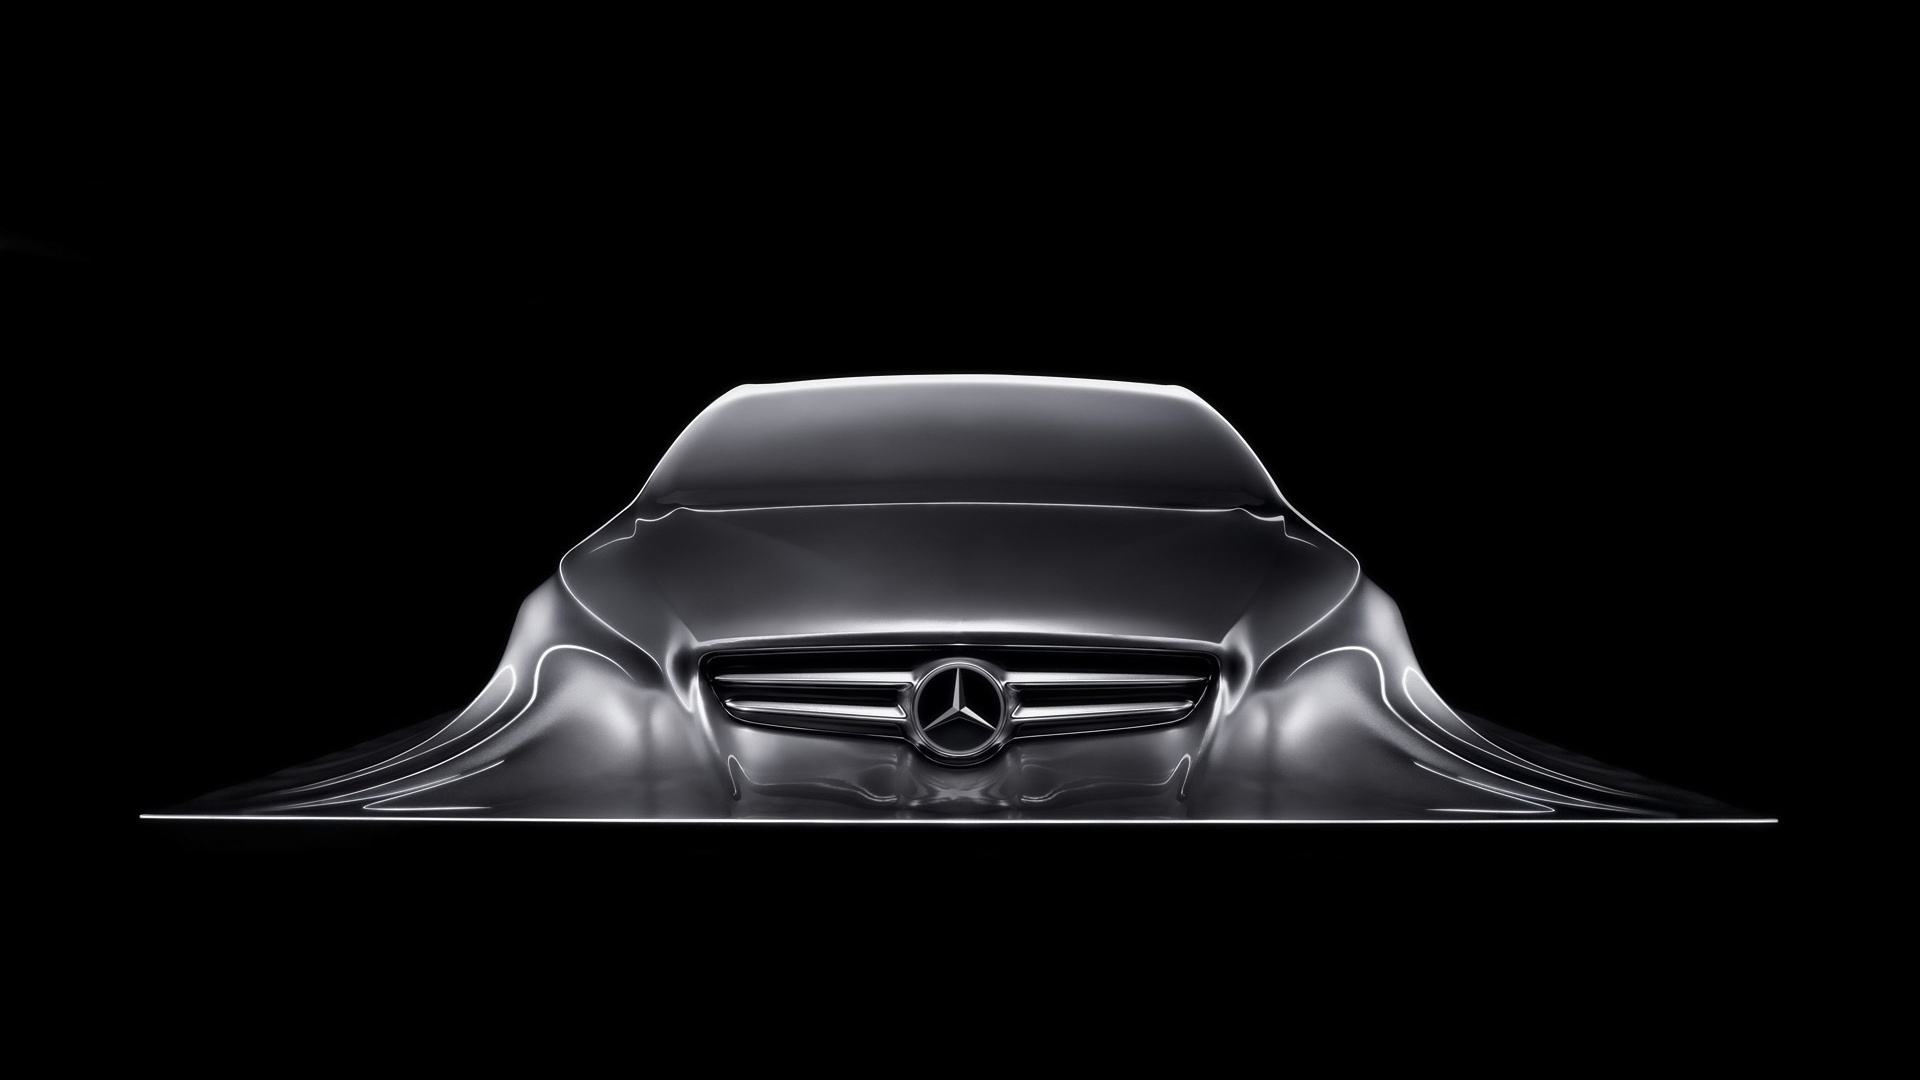 Special Mercedes Benz Logo Wallpaper Full HD Pictures 1920x1080